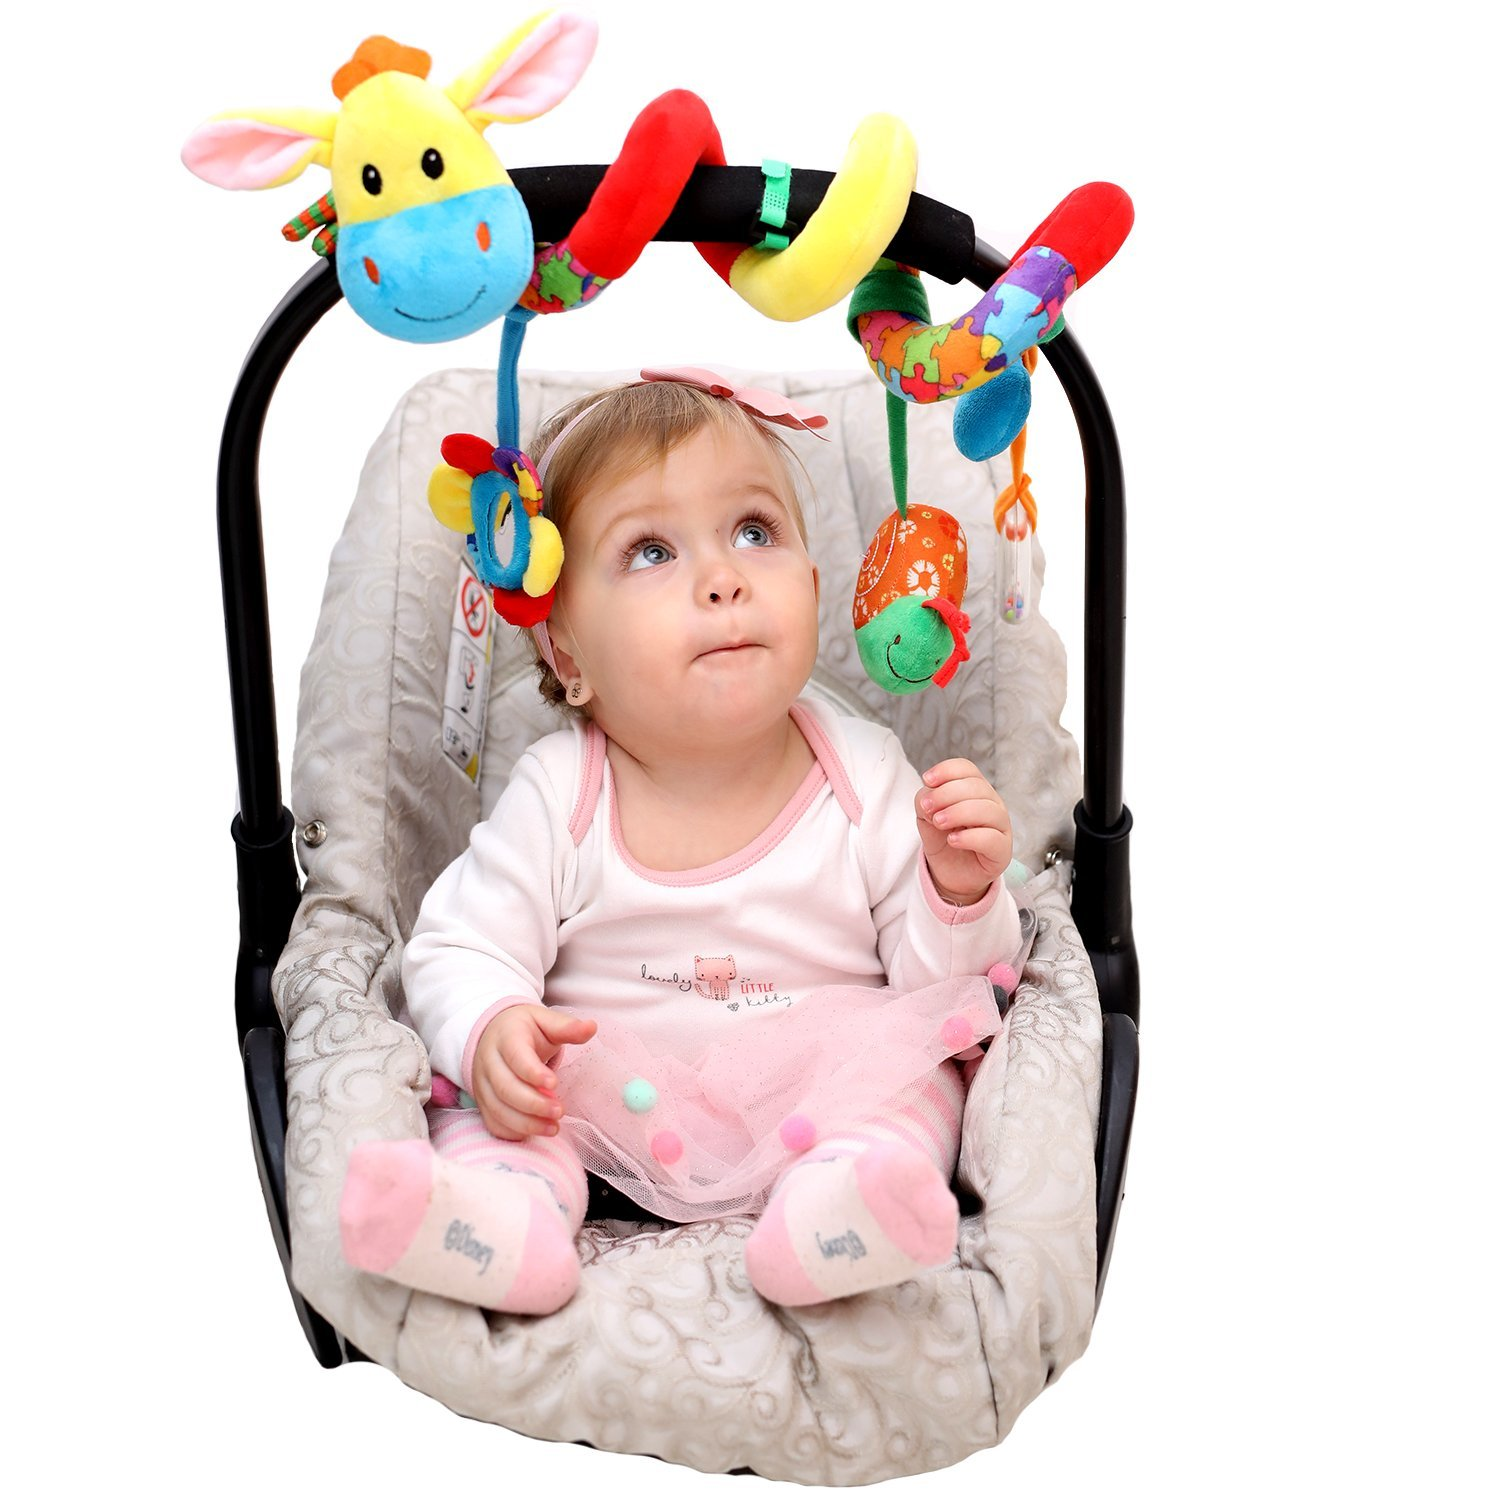 Car Seat Toy - Spiral Baby Hanging Activity Toy - Wrap Around Stroller, Crib, Pram, Bassinet - Unique Hook&Loop System - Doesn't Stay Bunched Up and Keeps it Stretched Out + eBook&Kids Songs Included